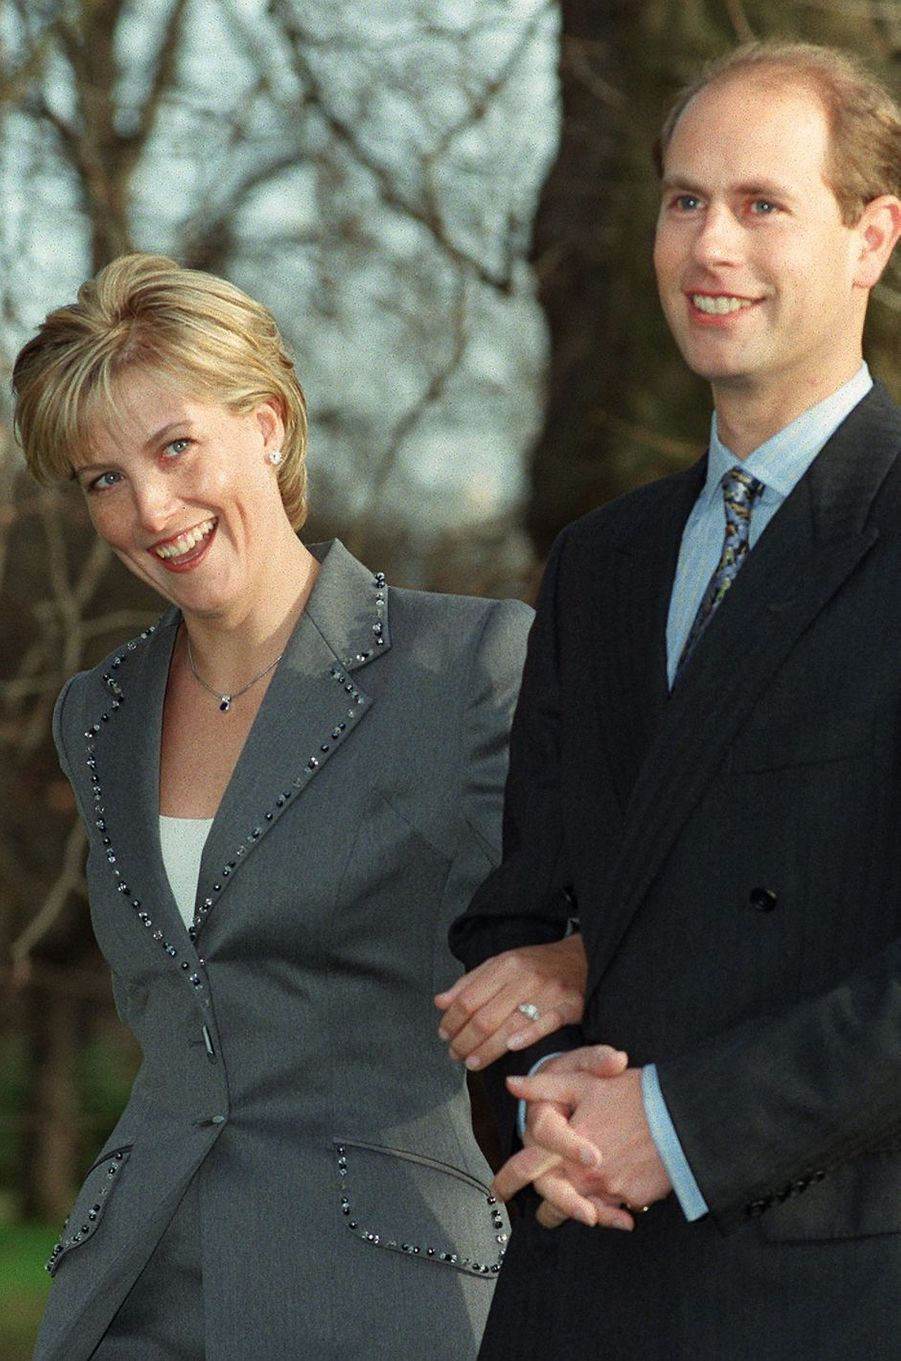 Diamants pour Sophie Rhys-Jones, fiancée au prince Edward en 1999